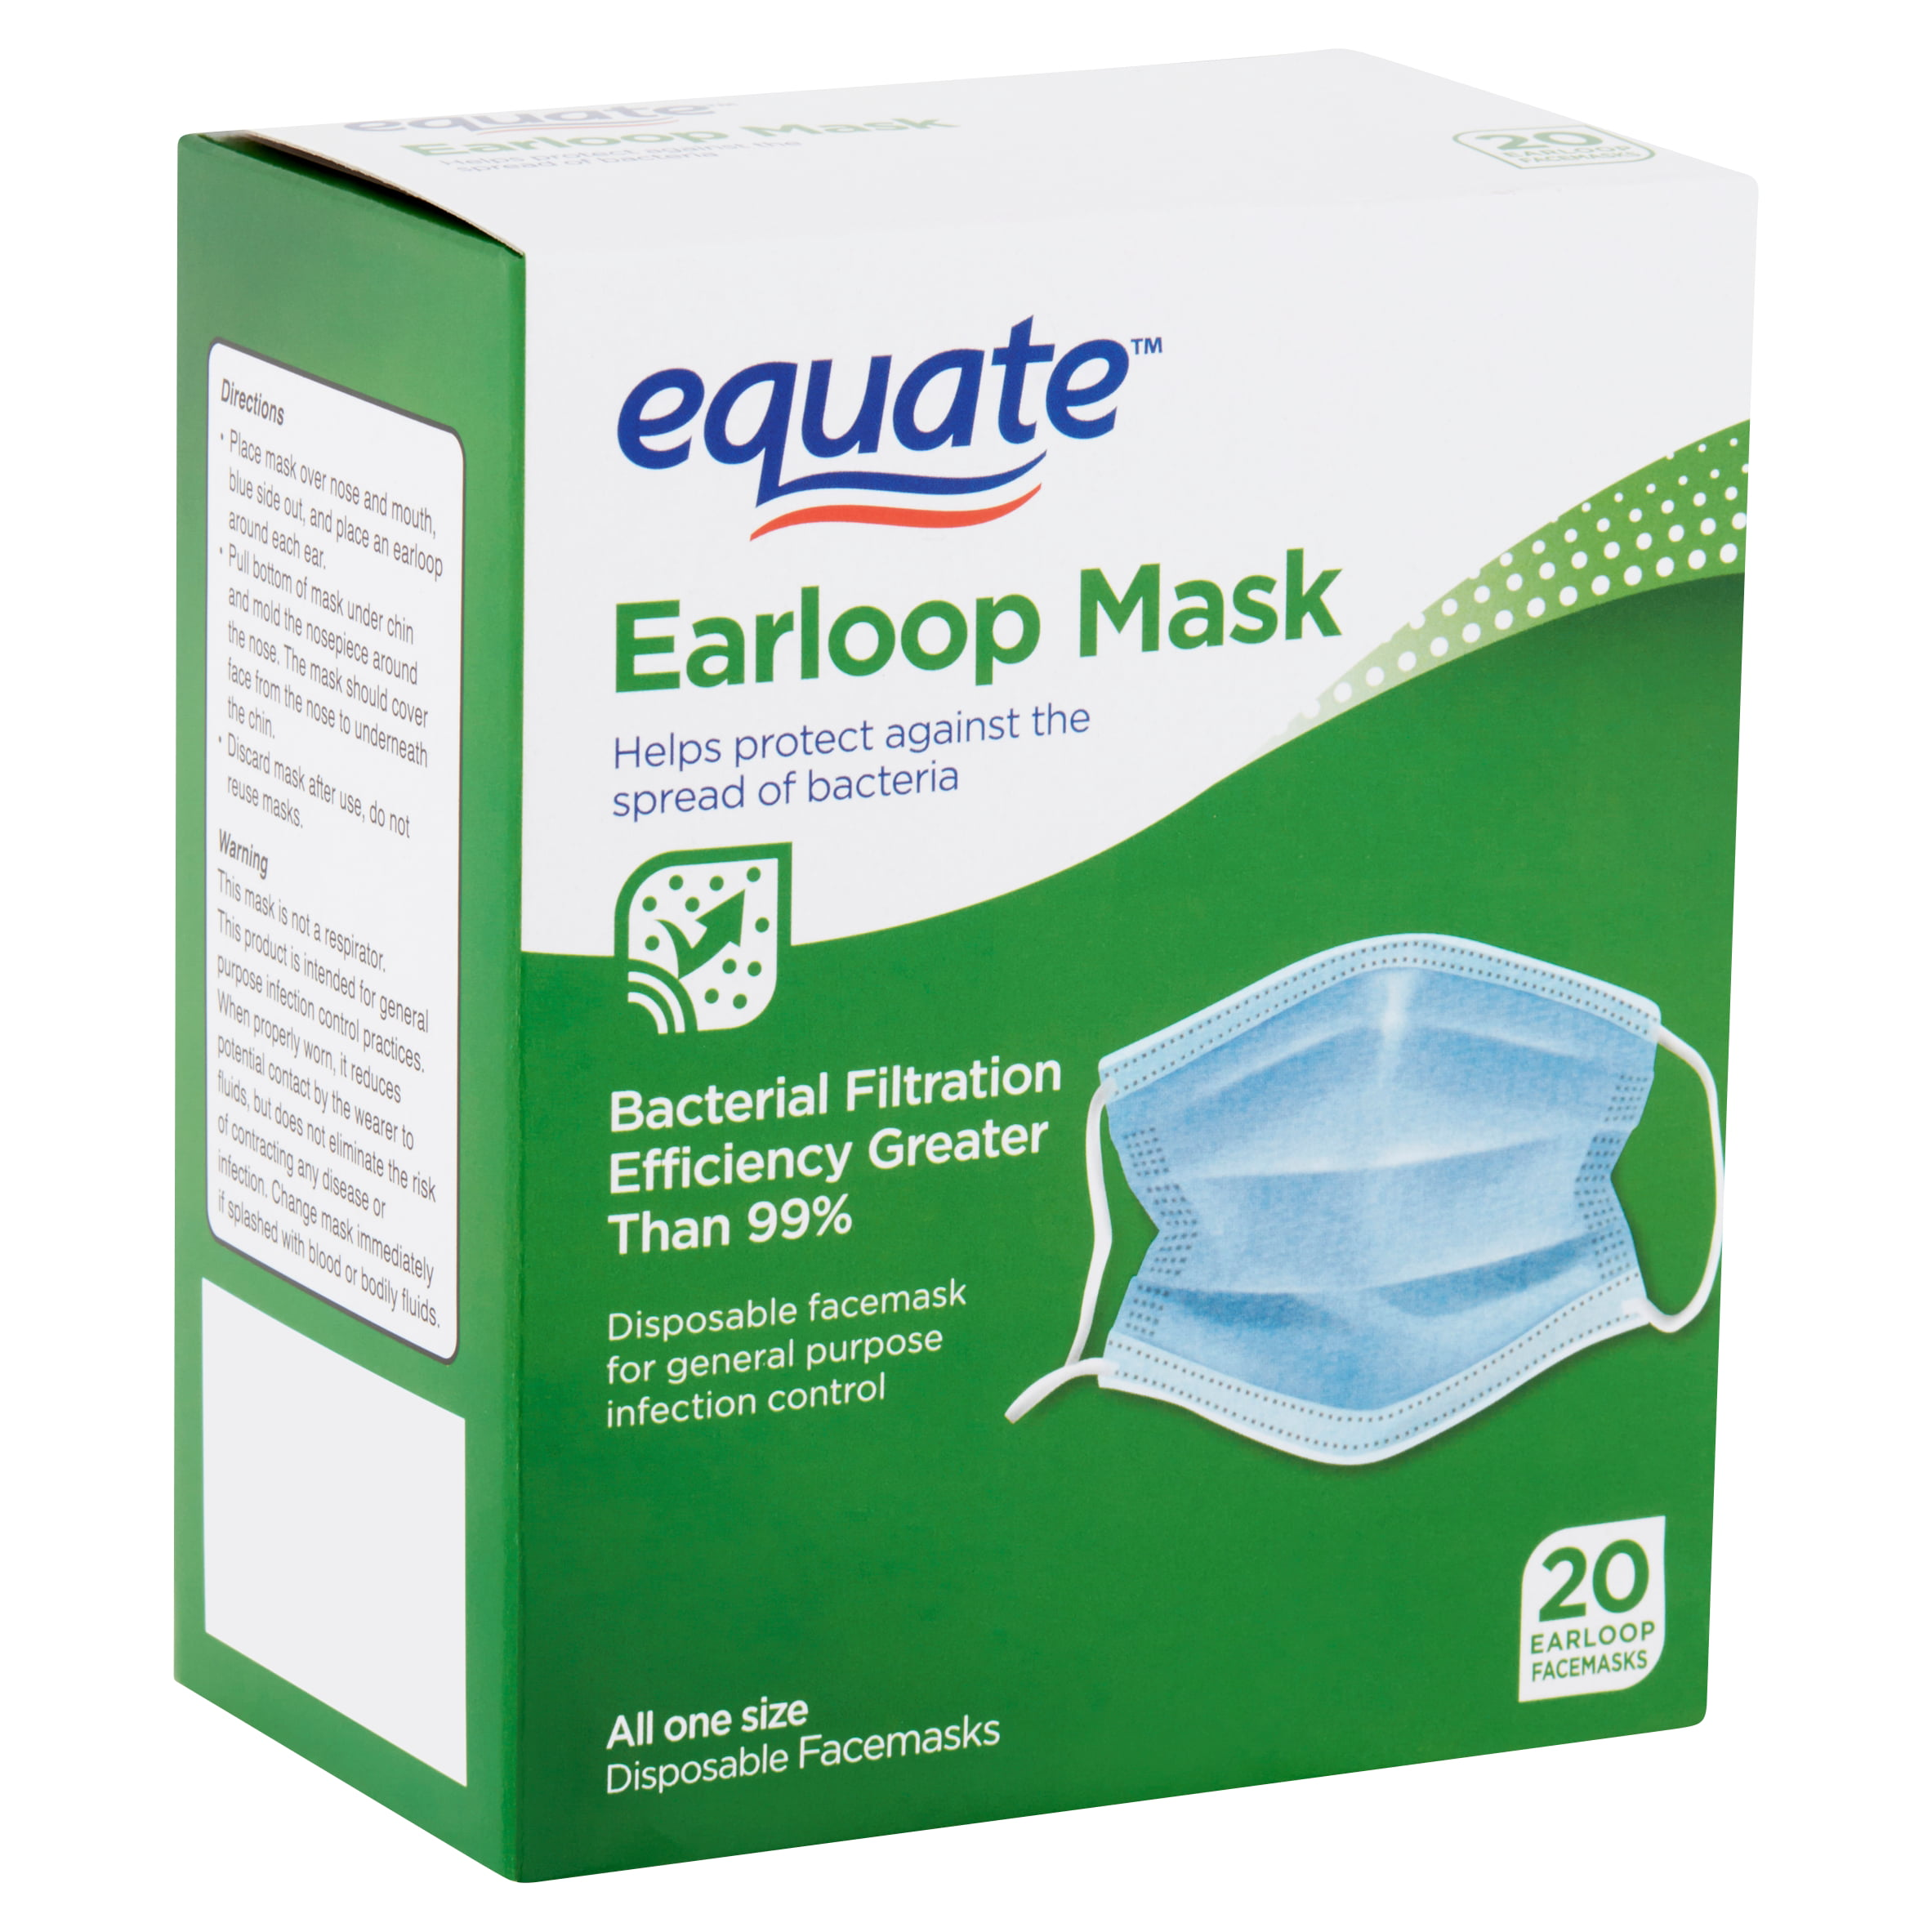 com Earloop Facemasks - 2 Disposable Pack Walmart 20 Equate Count